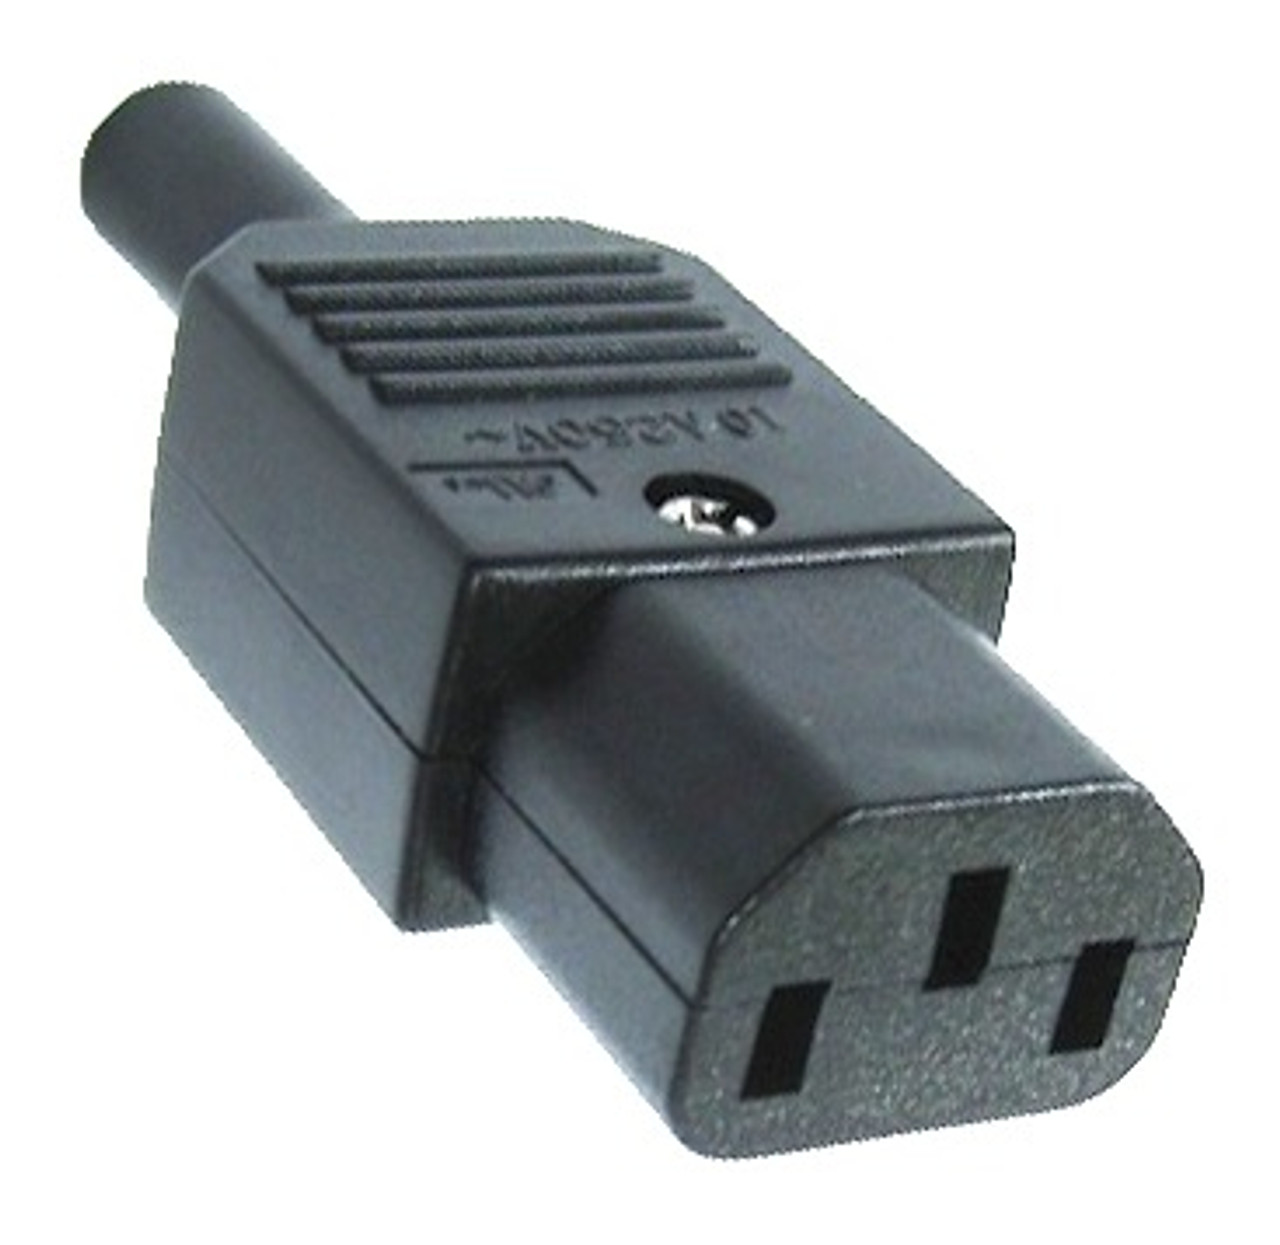 10A C13 IEC socket Black - Asian (quality brand) UL Approval only